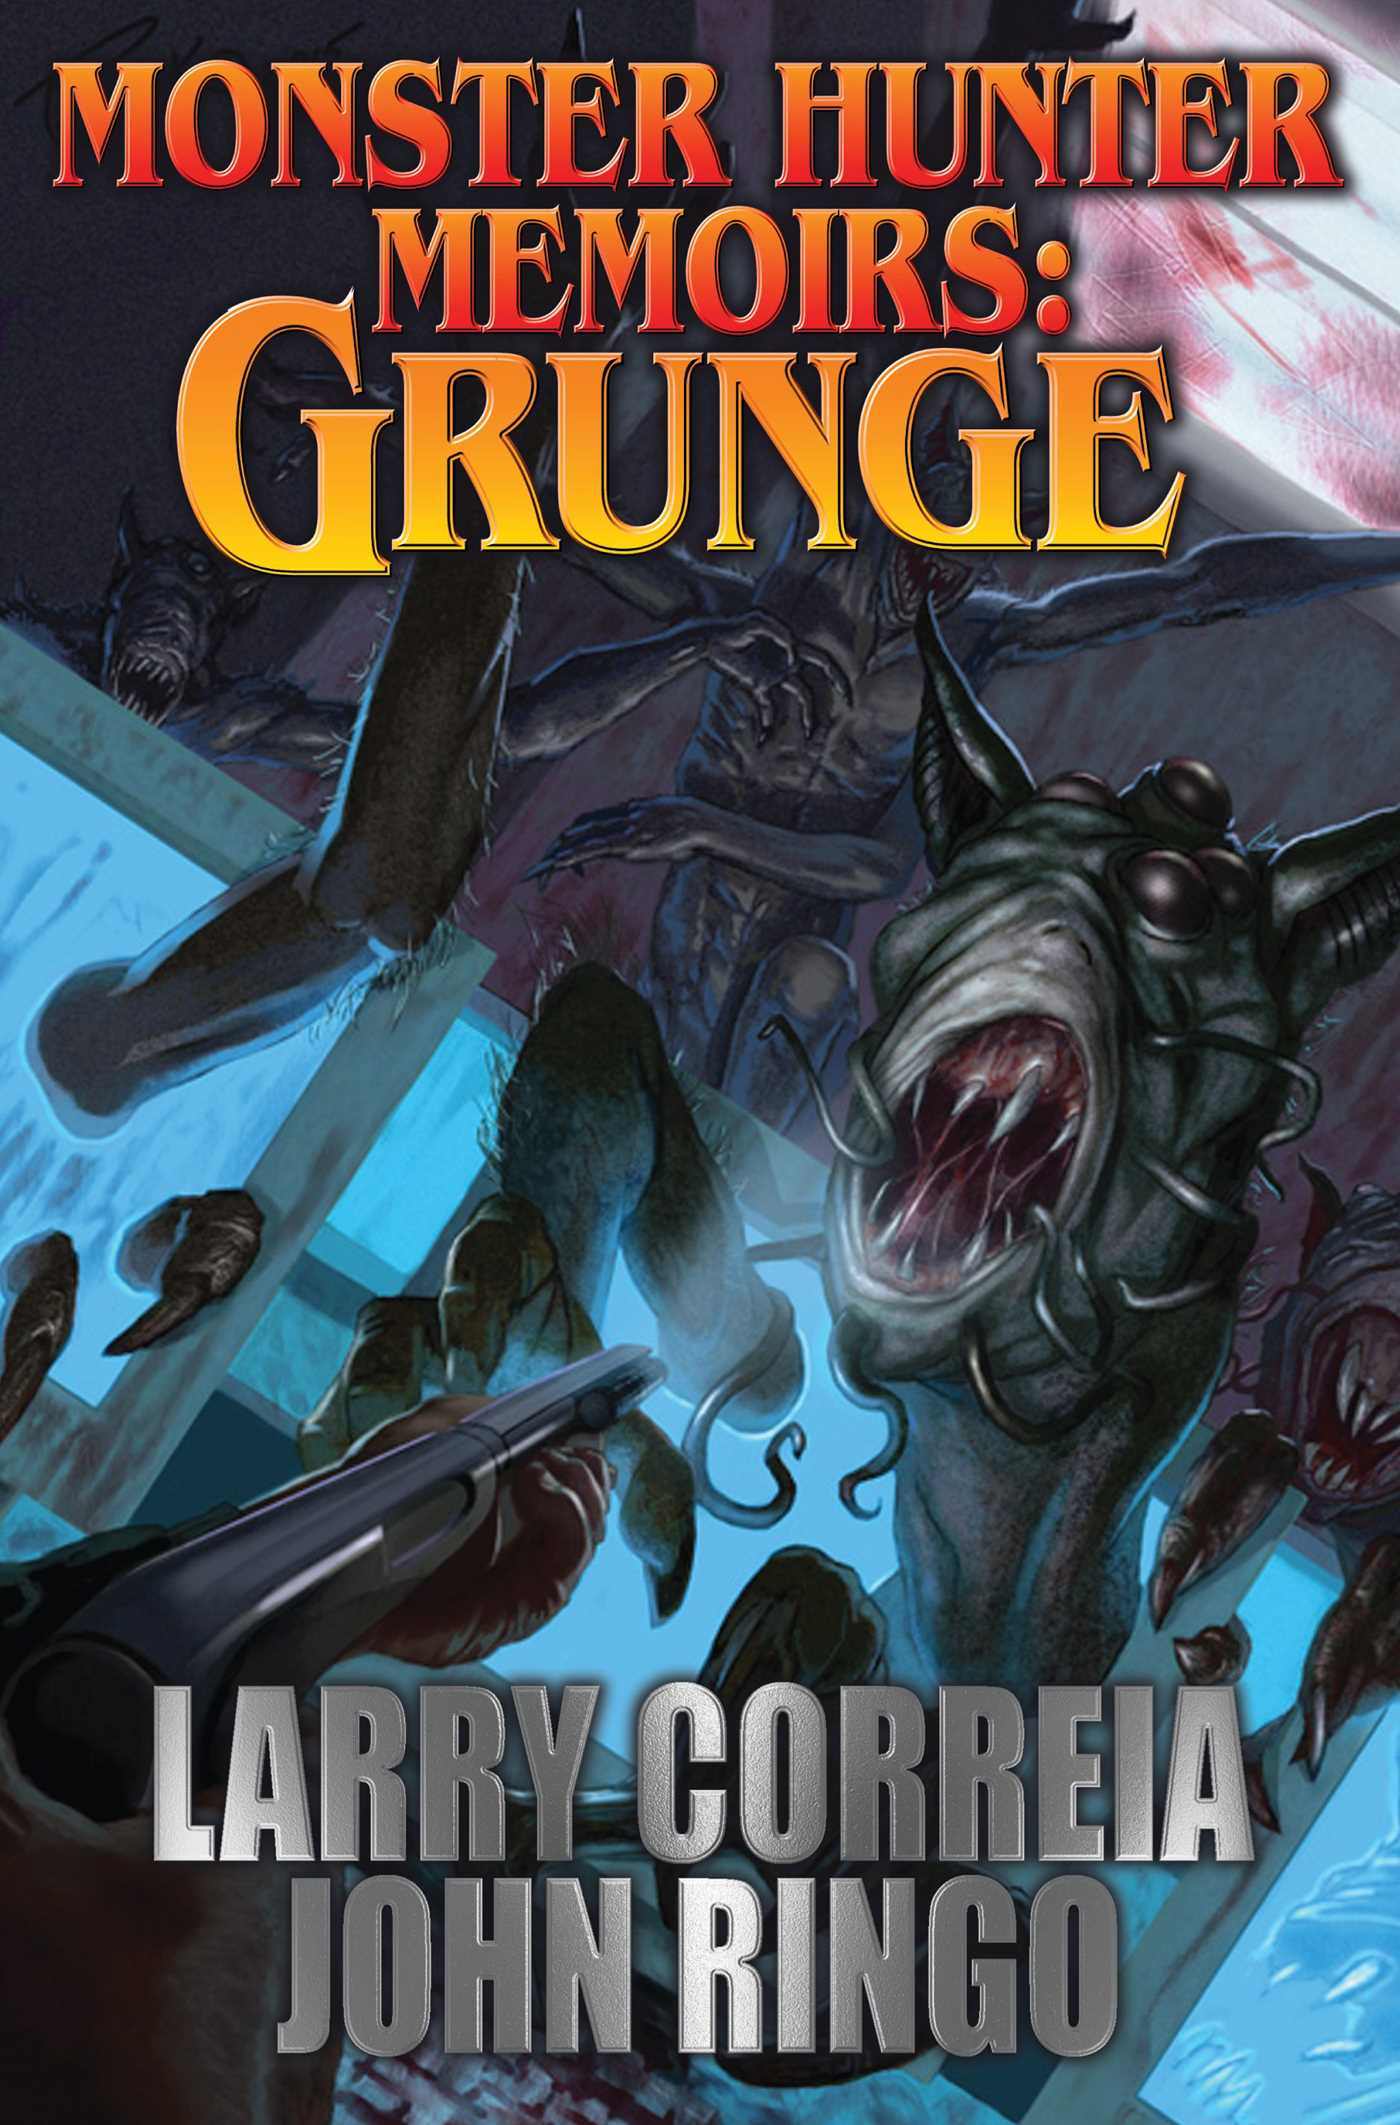 """Monster Hunter Memoirs - Grunge"" by Larry Correia and John Ringo."